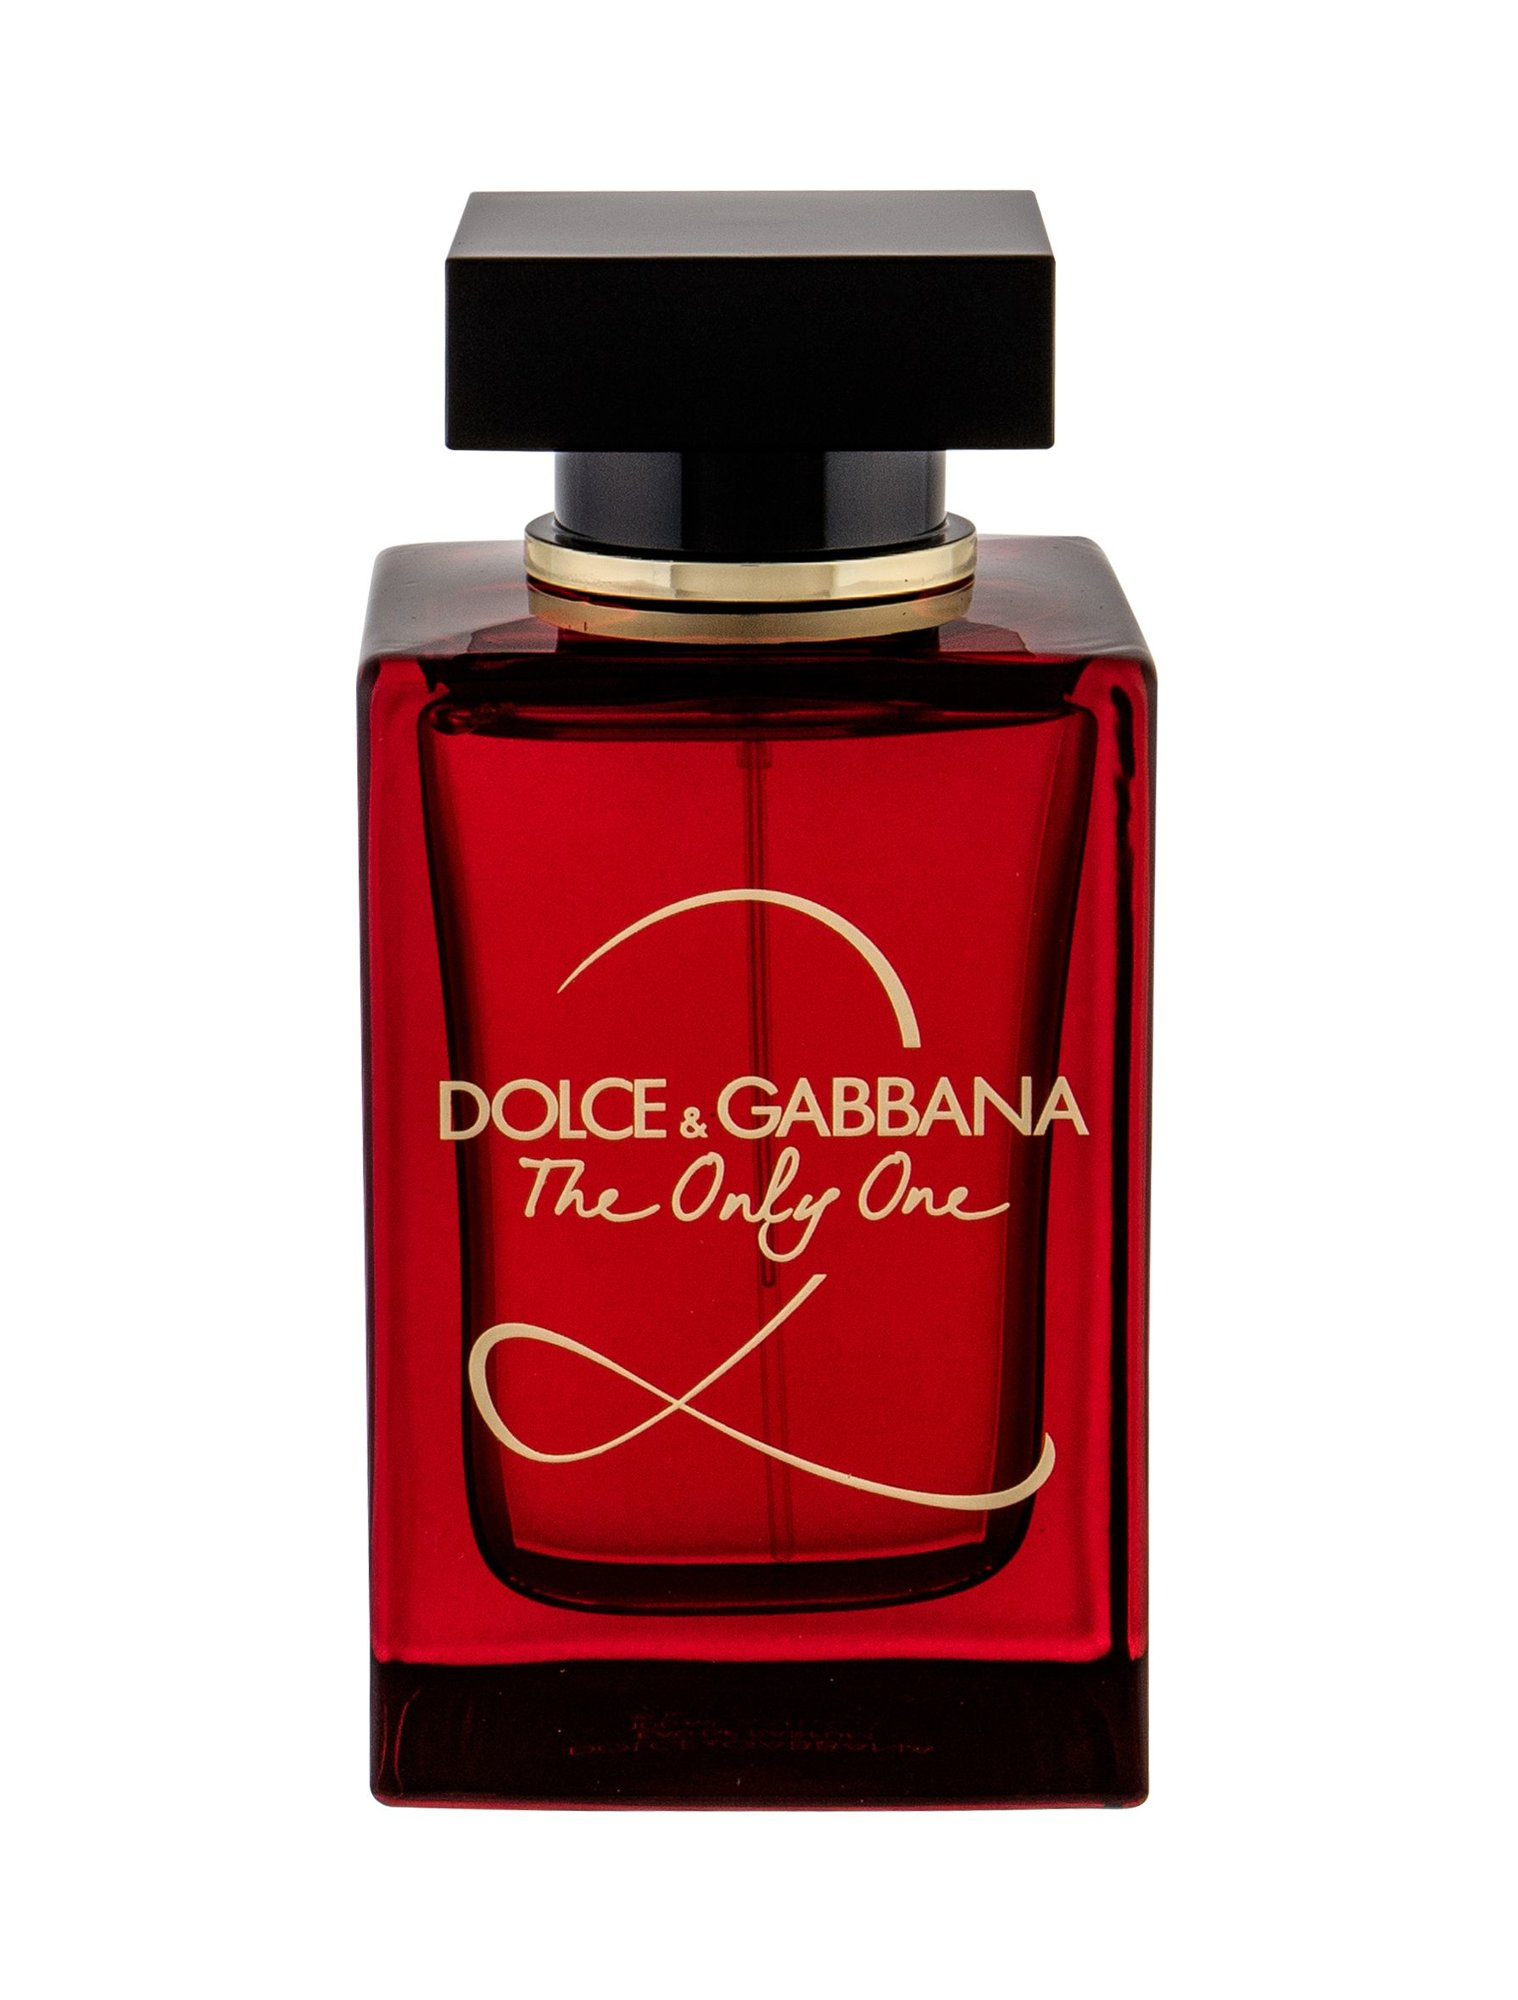 Dolce&Gabbana The Only One 2 Eau de Parfum 100ml